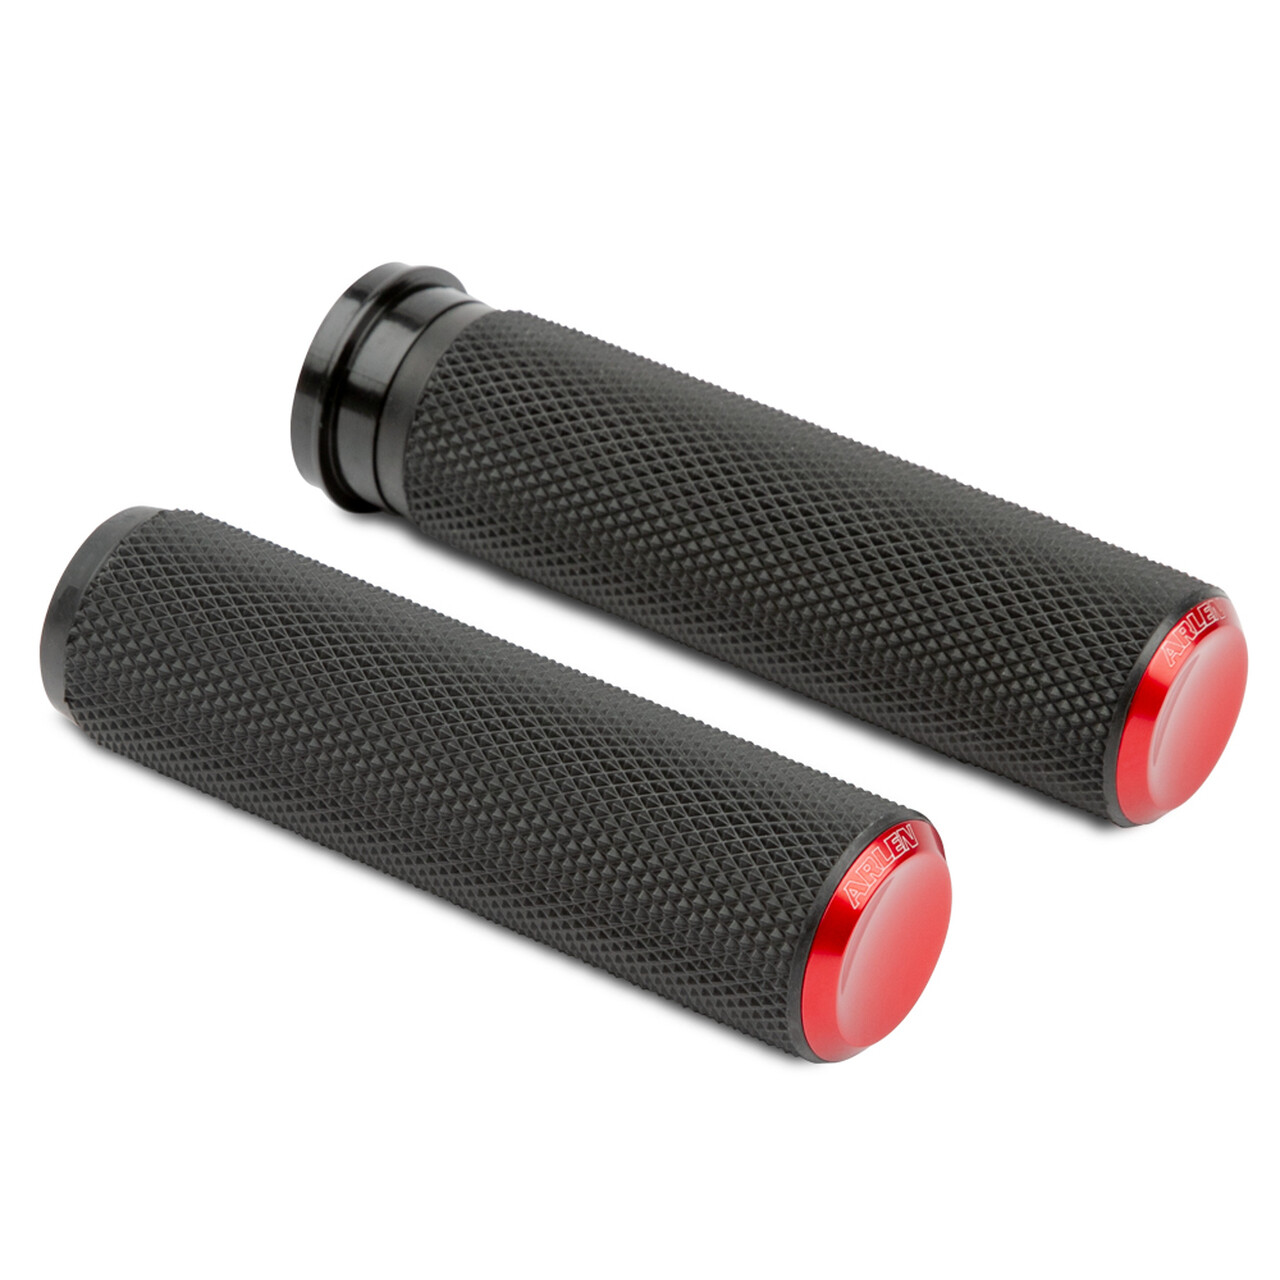 Arlen Ness Knurled Grips Red, TBW (07-346, 0630-2597)